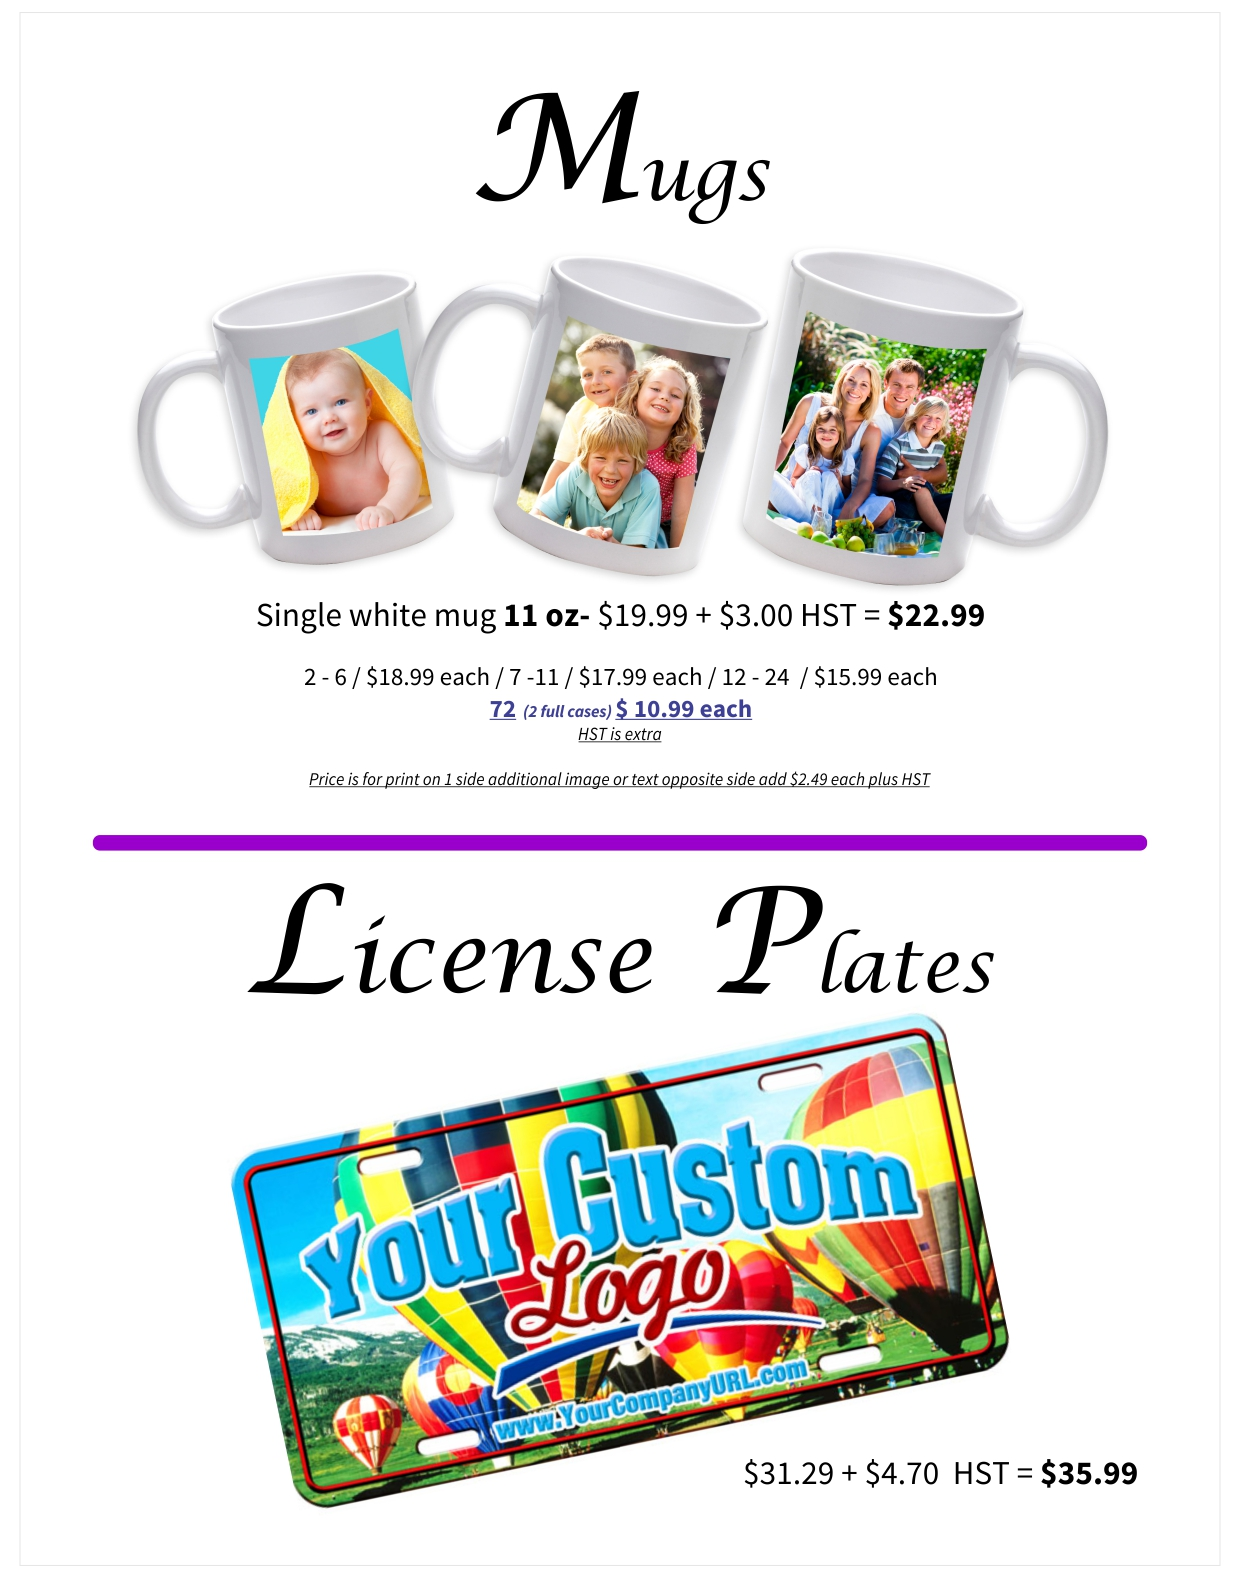 Mugs and License Plates